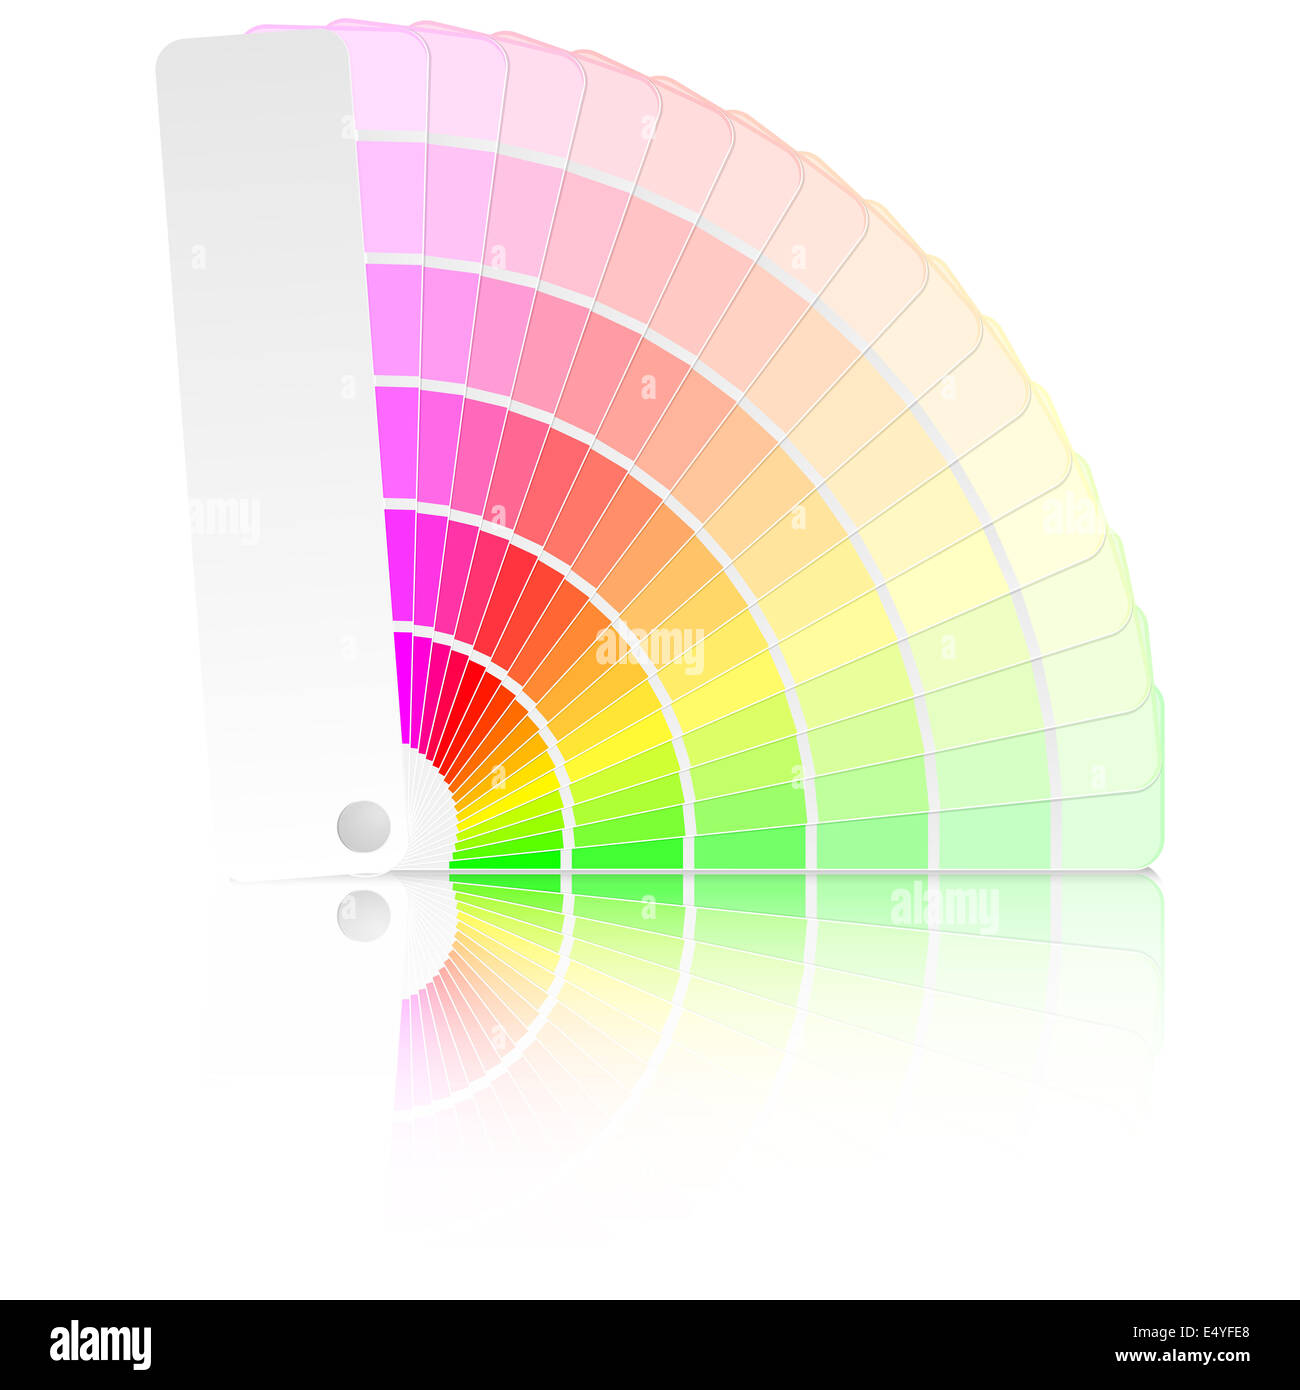 Color chart stock photo royalty free image 71904960 alamy color chart nvjuhfo Images